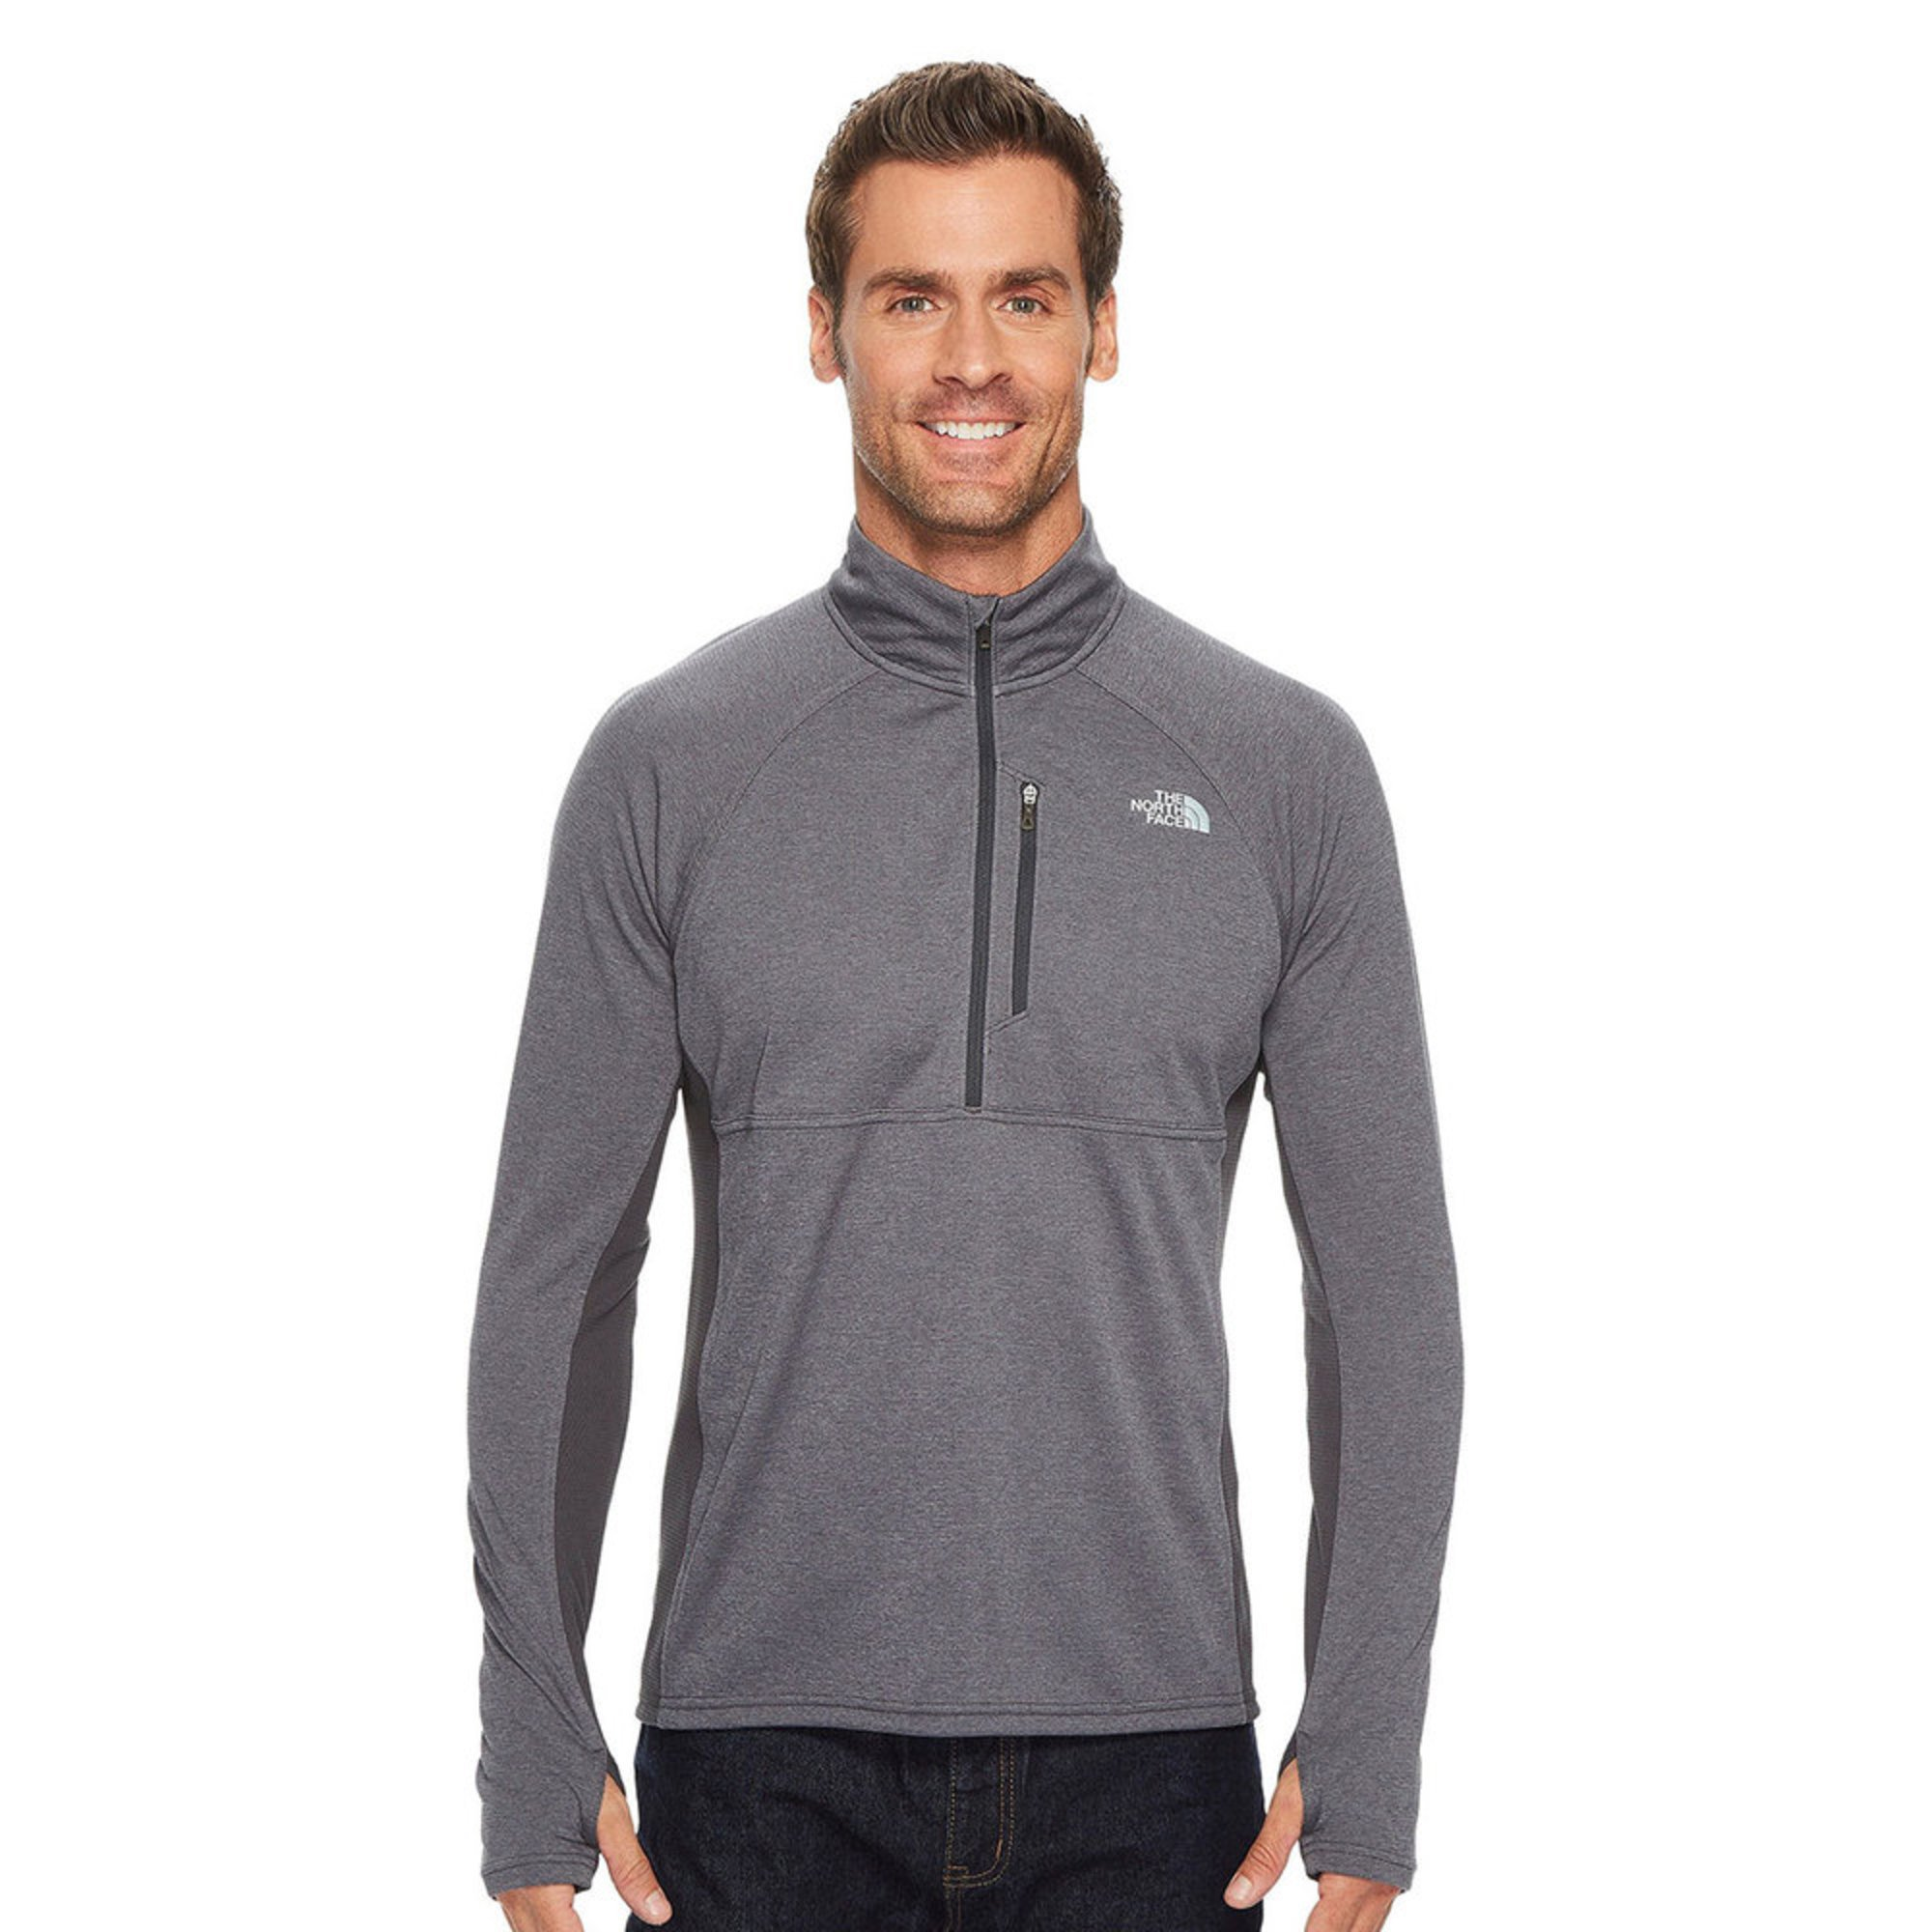 0a04c7b9e The North Face Men's Mountain Athletic Ambition Double Knit 1/4 Zip Pullover